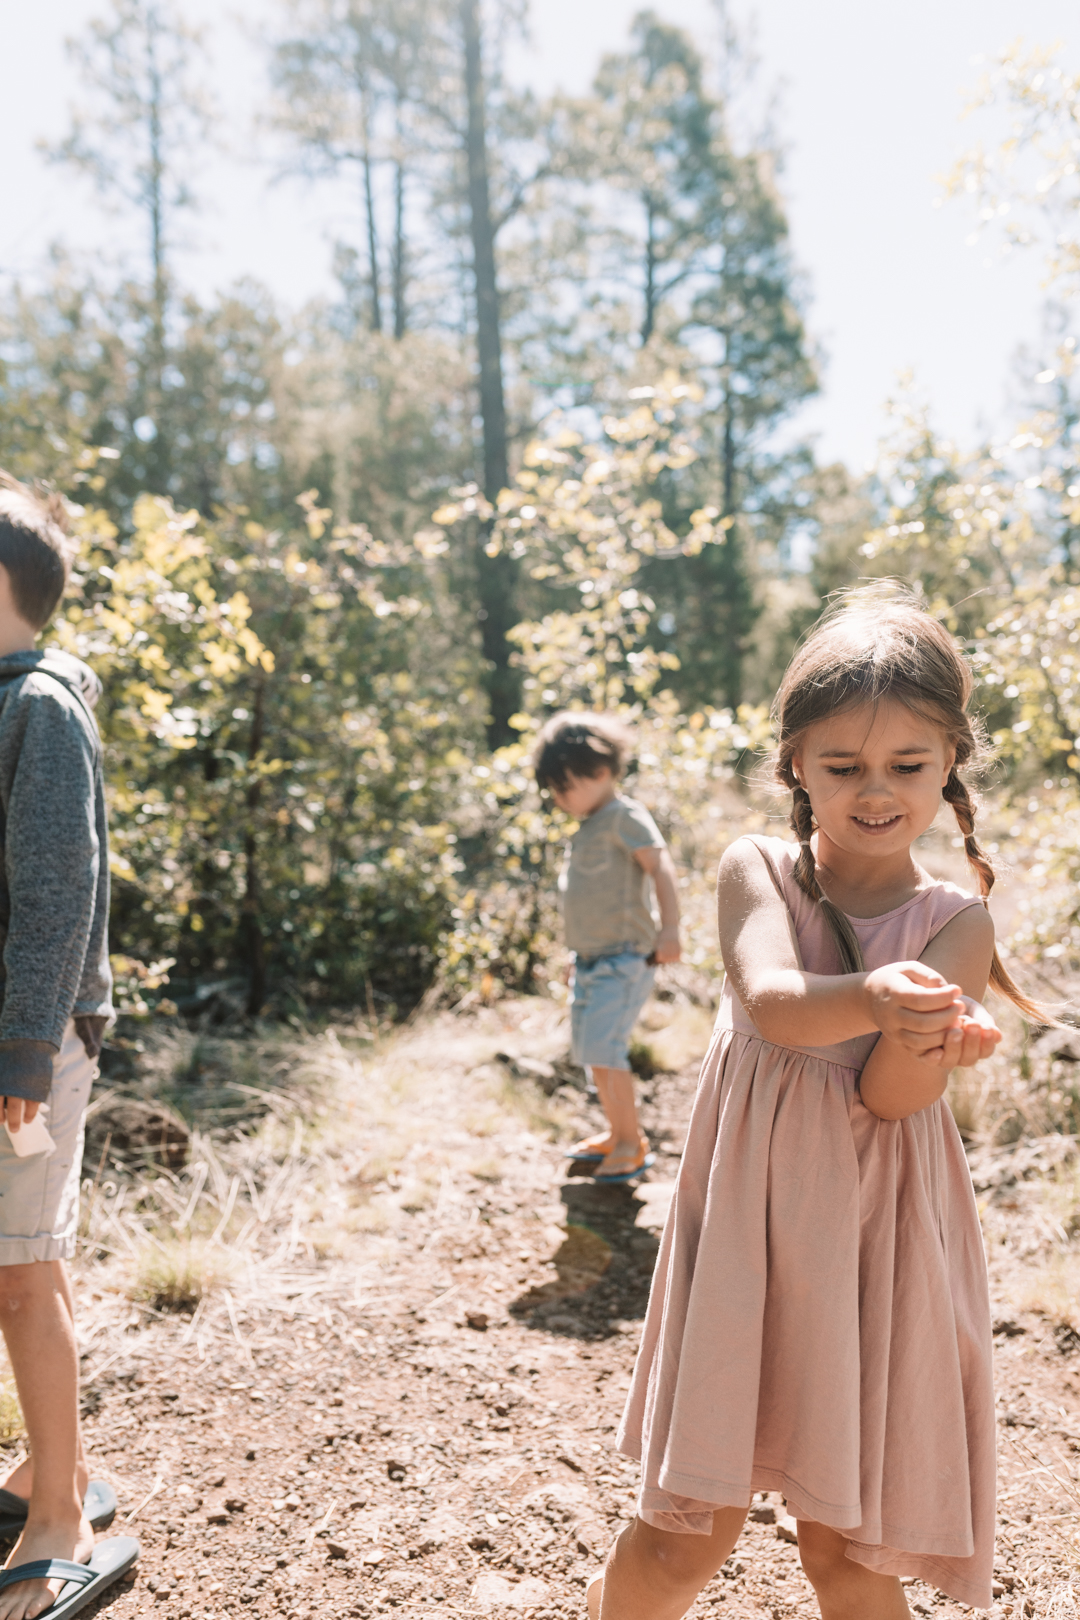 3 kids on a walk in the woods